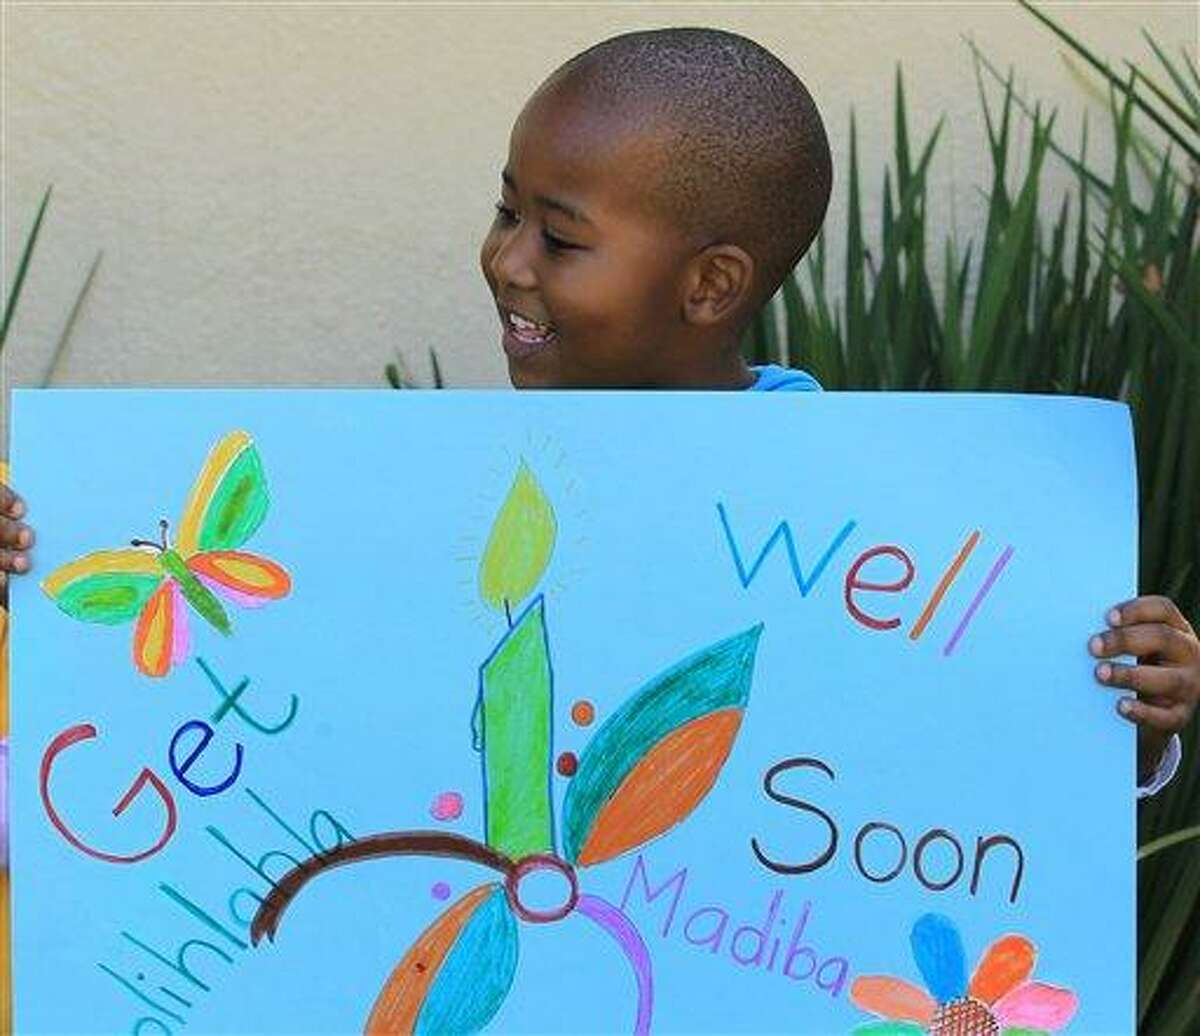 A young boy from Othandweni Community Center holds a placard wishing former South African President Nelson Mandela a prompt recovery outside his residence in Johannesburg, South Africa, Wednesday, June 12, 2013. Mandela, remains in hospital for a fifth day. The 94-year-old icon was hospitalized on Saturday for a recurring lung infection. (AP Photo/Themba Hadebe)